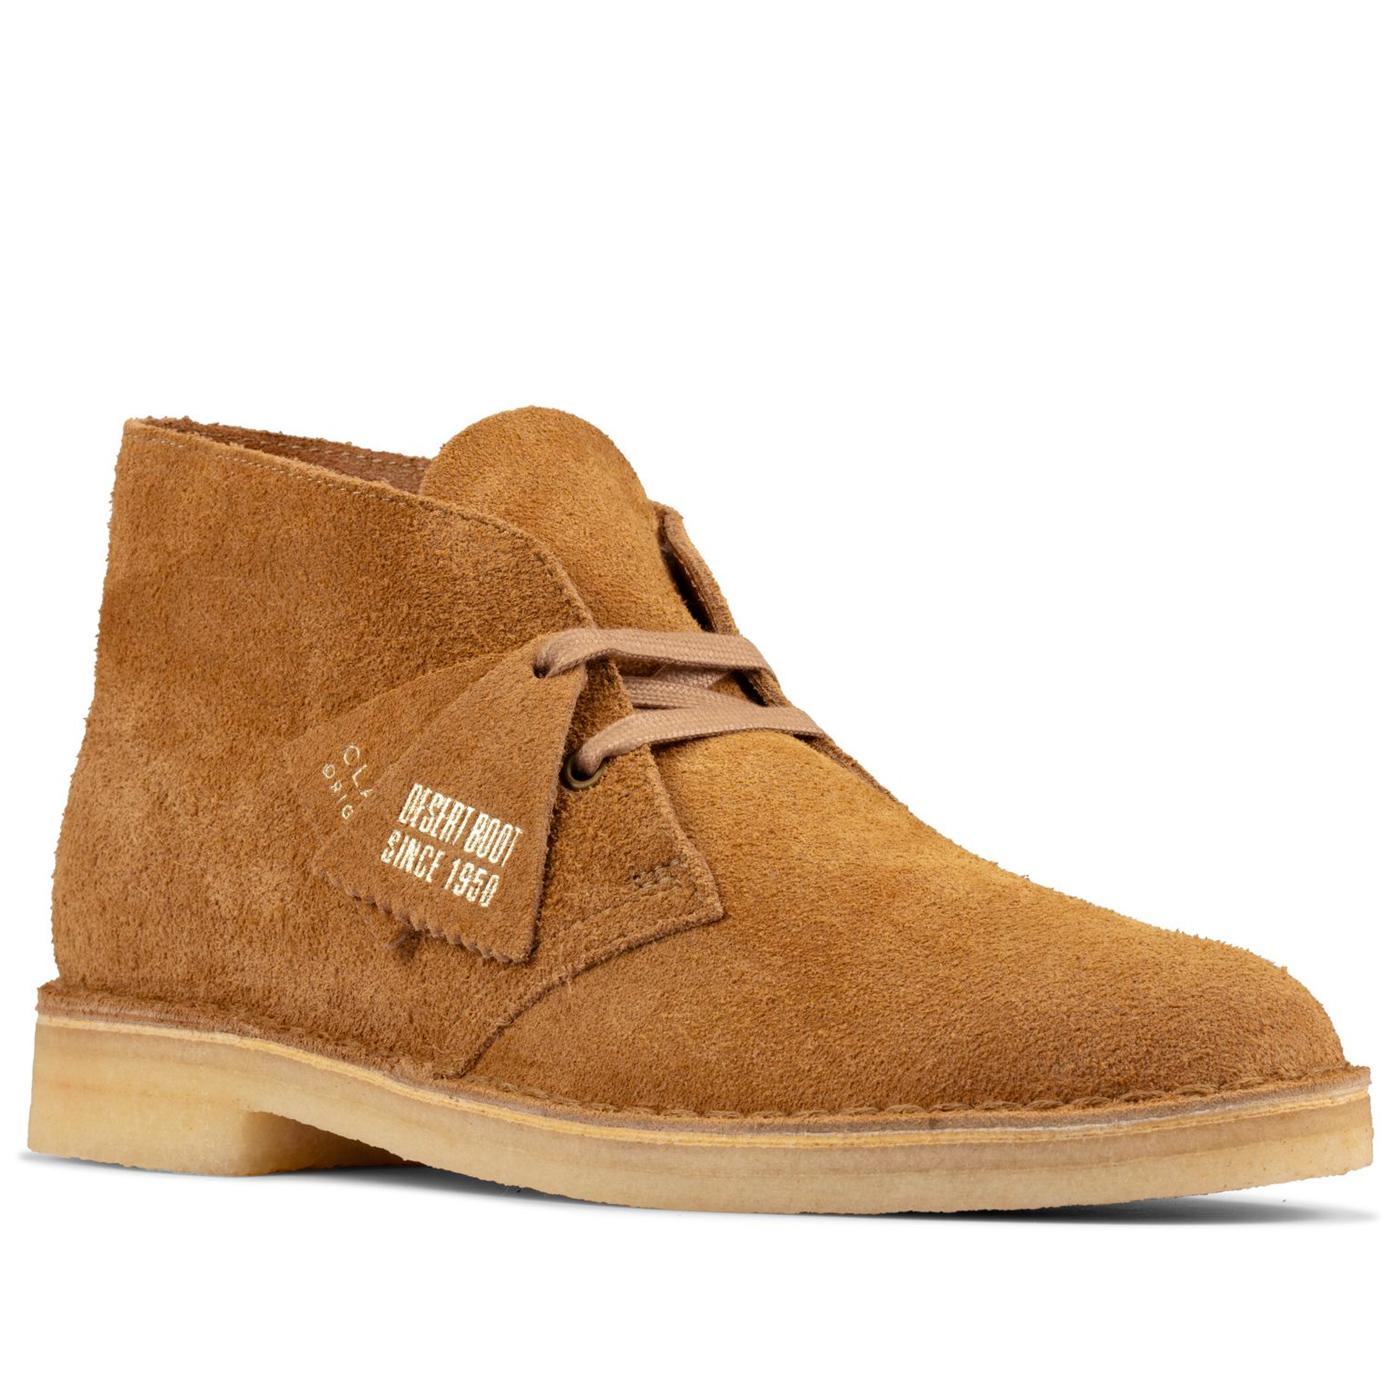 Desert Boots CLARKS ORIGINALS Men's Boots NUTMEG